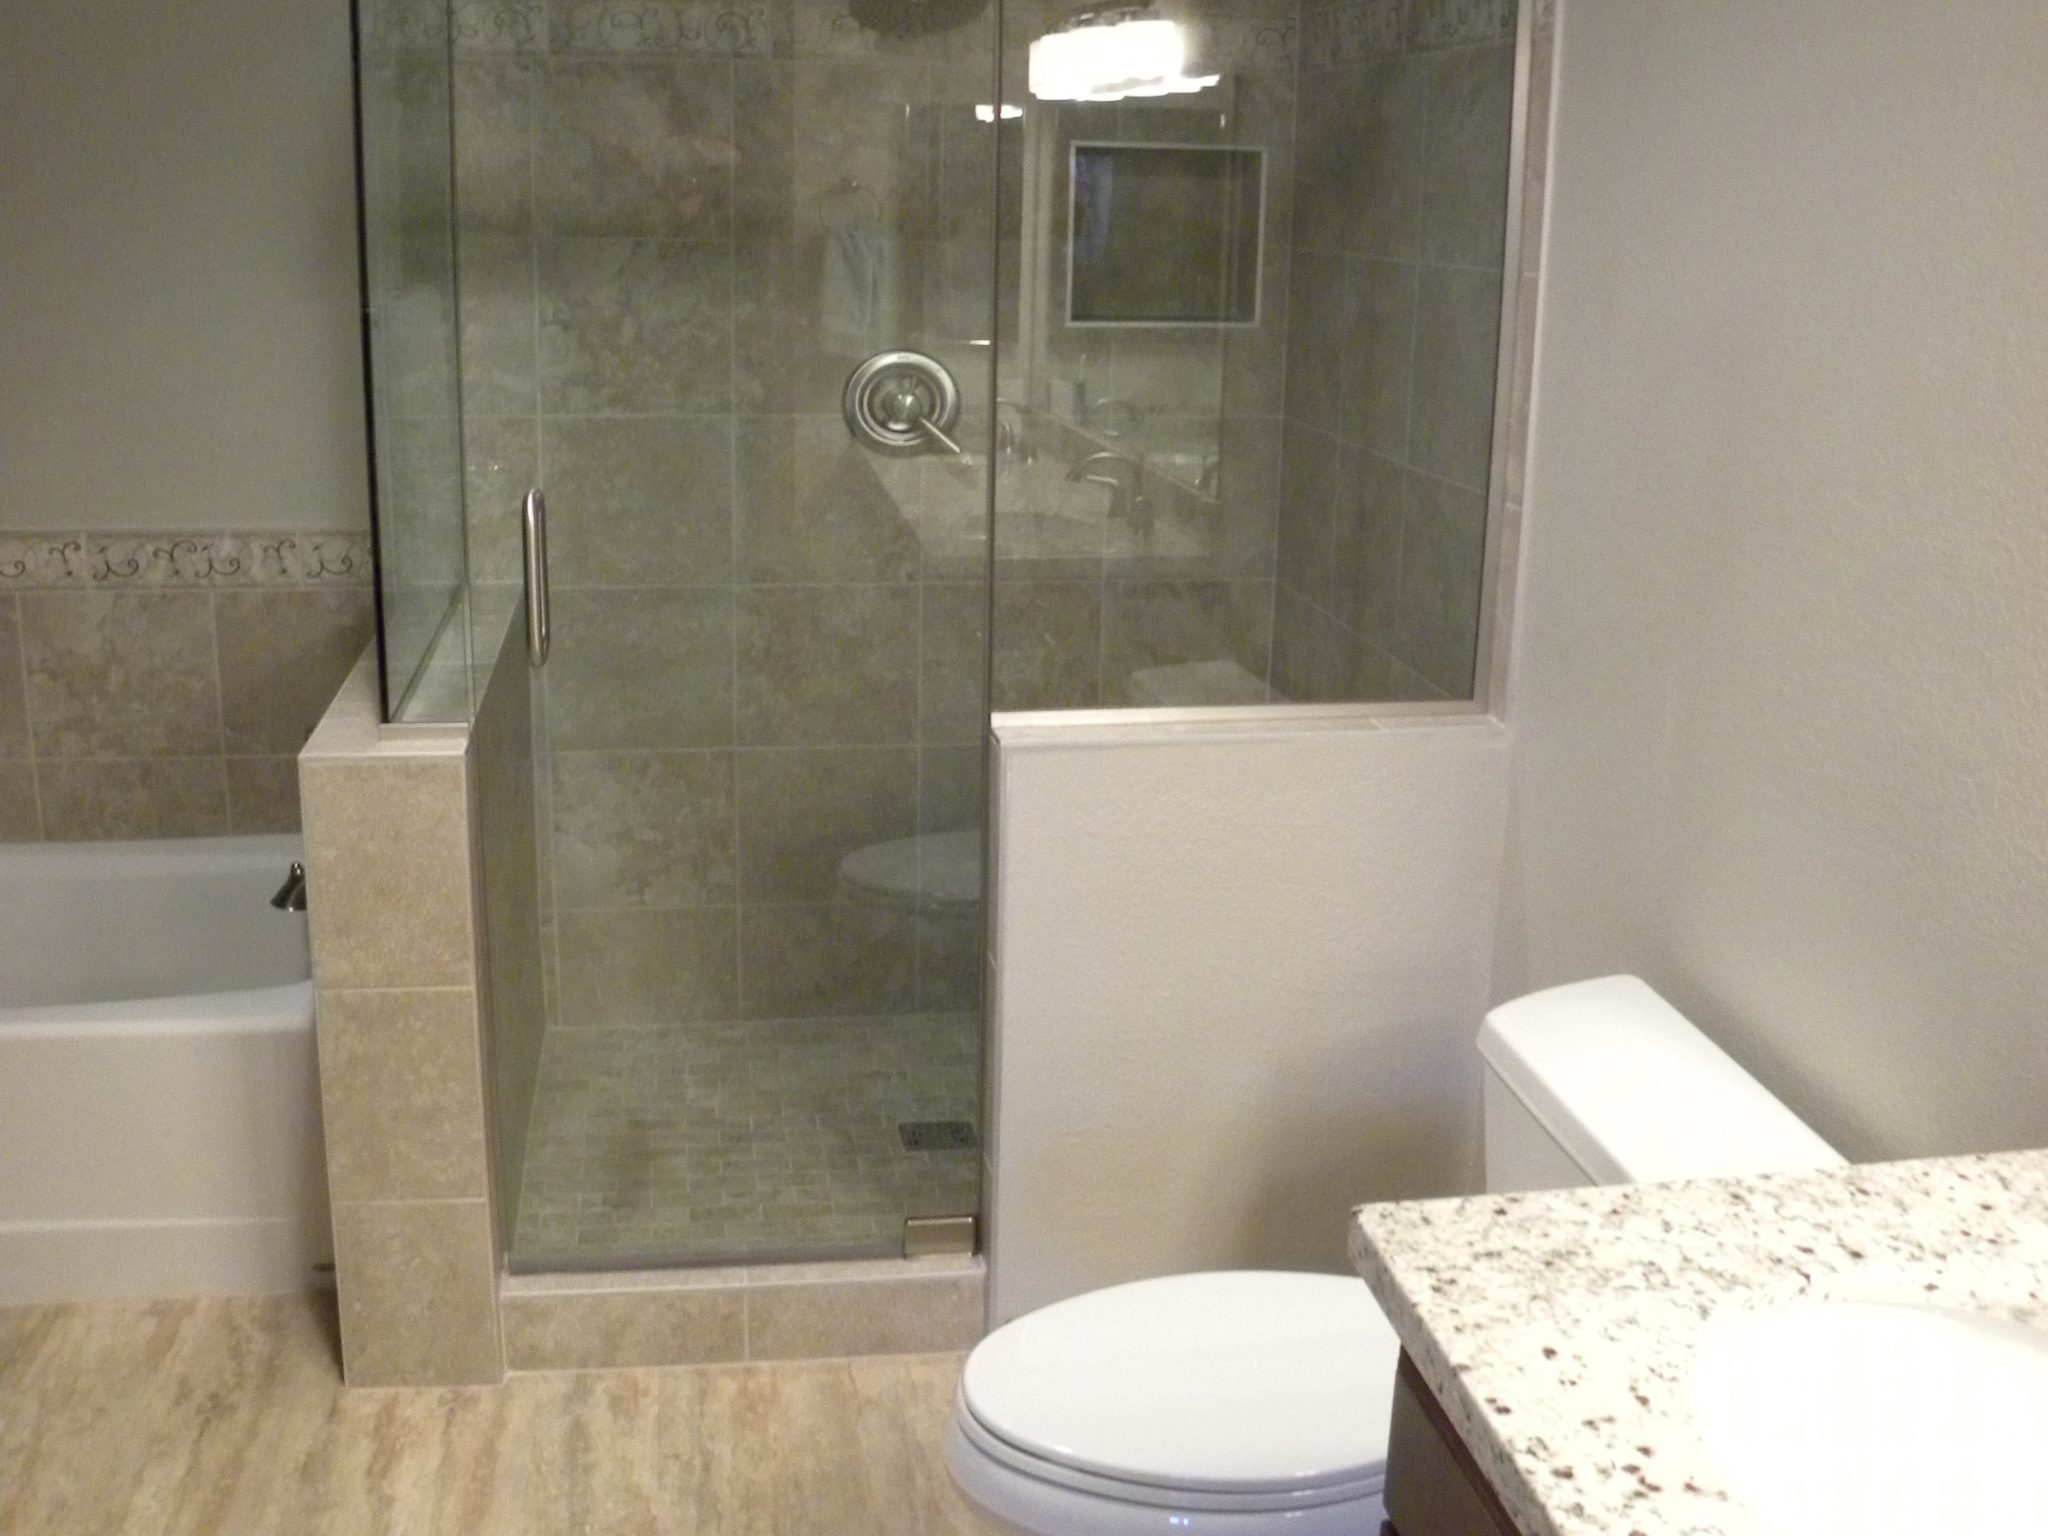 Interior shot of a newly remolded bathroom with a gray-tiled shower and white granite countertops